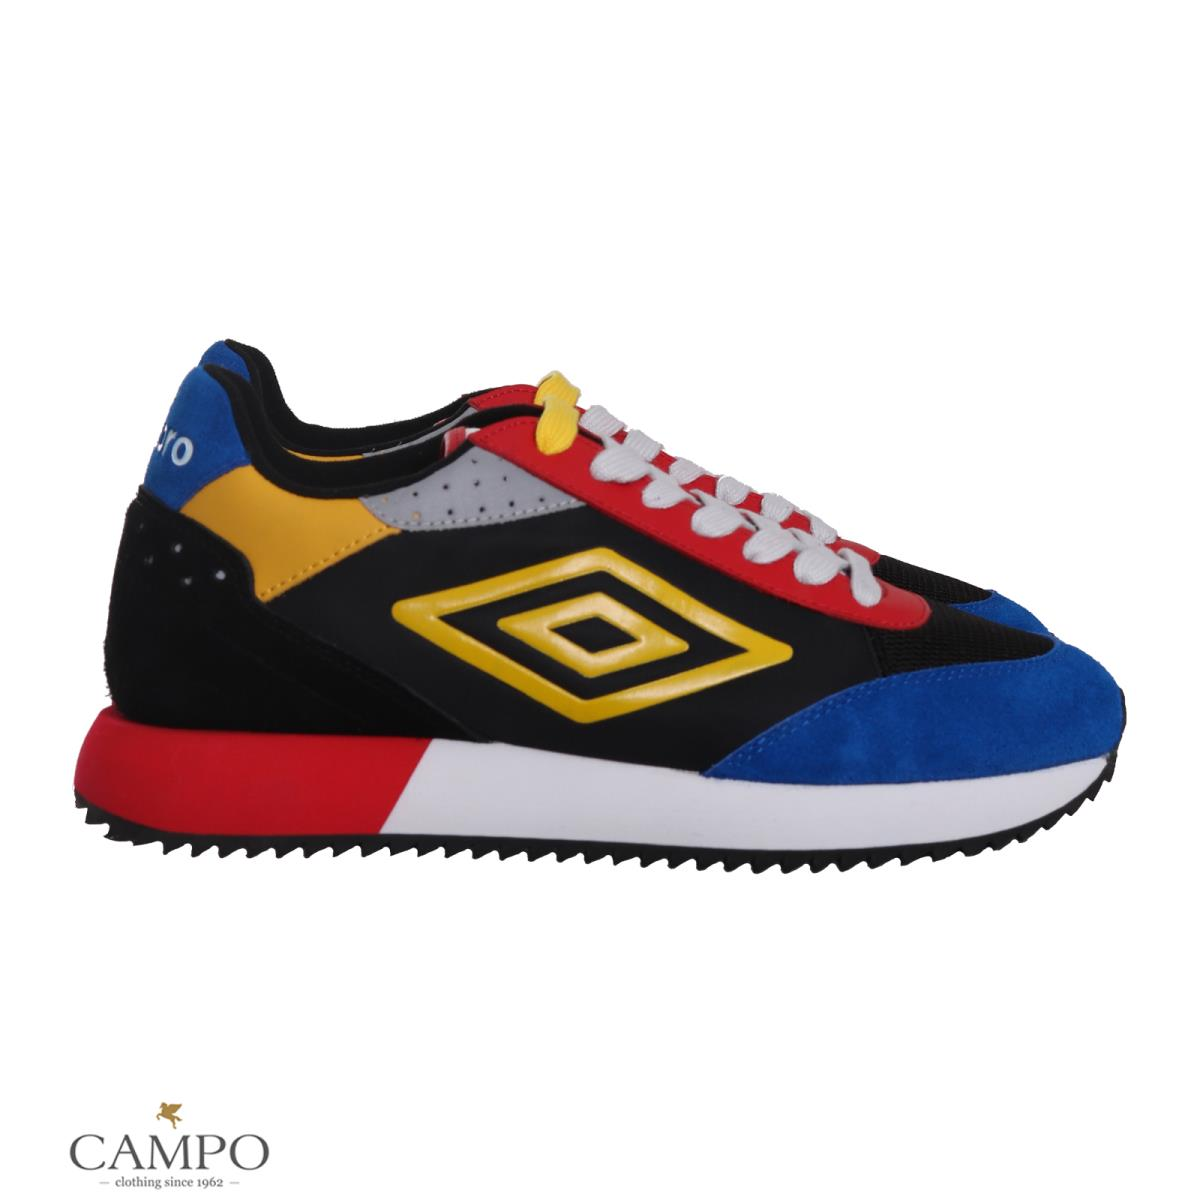 wholesale dealer 690c9 301dc Umbro Scarpe u181910mu-m